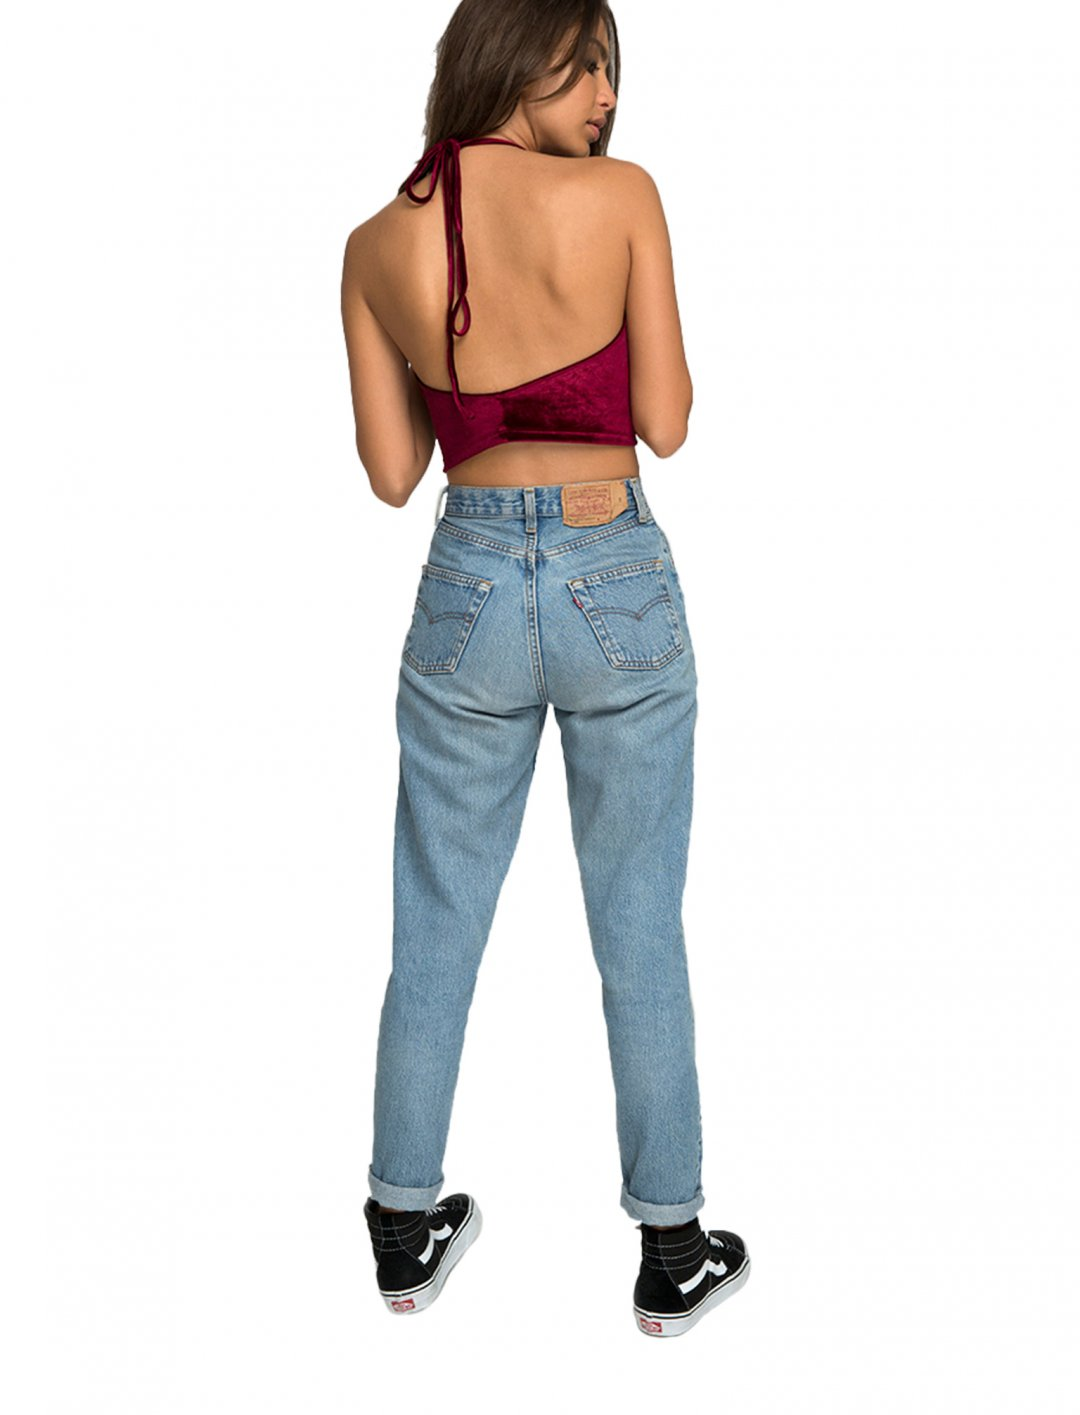 """Motel Velvet Crop Top {""""id"""":5,""""product_section_id"""":1,""""name"""":""""Clothing"""",""""order"""":5} Motel"""